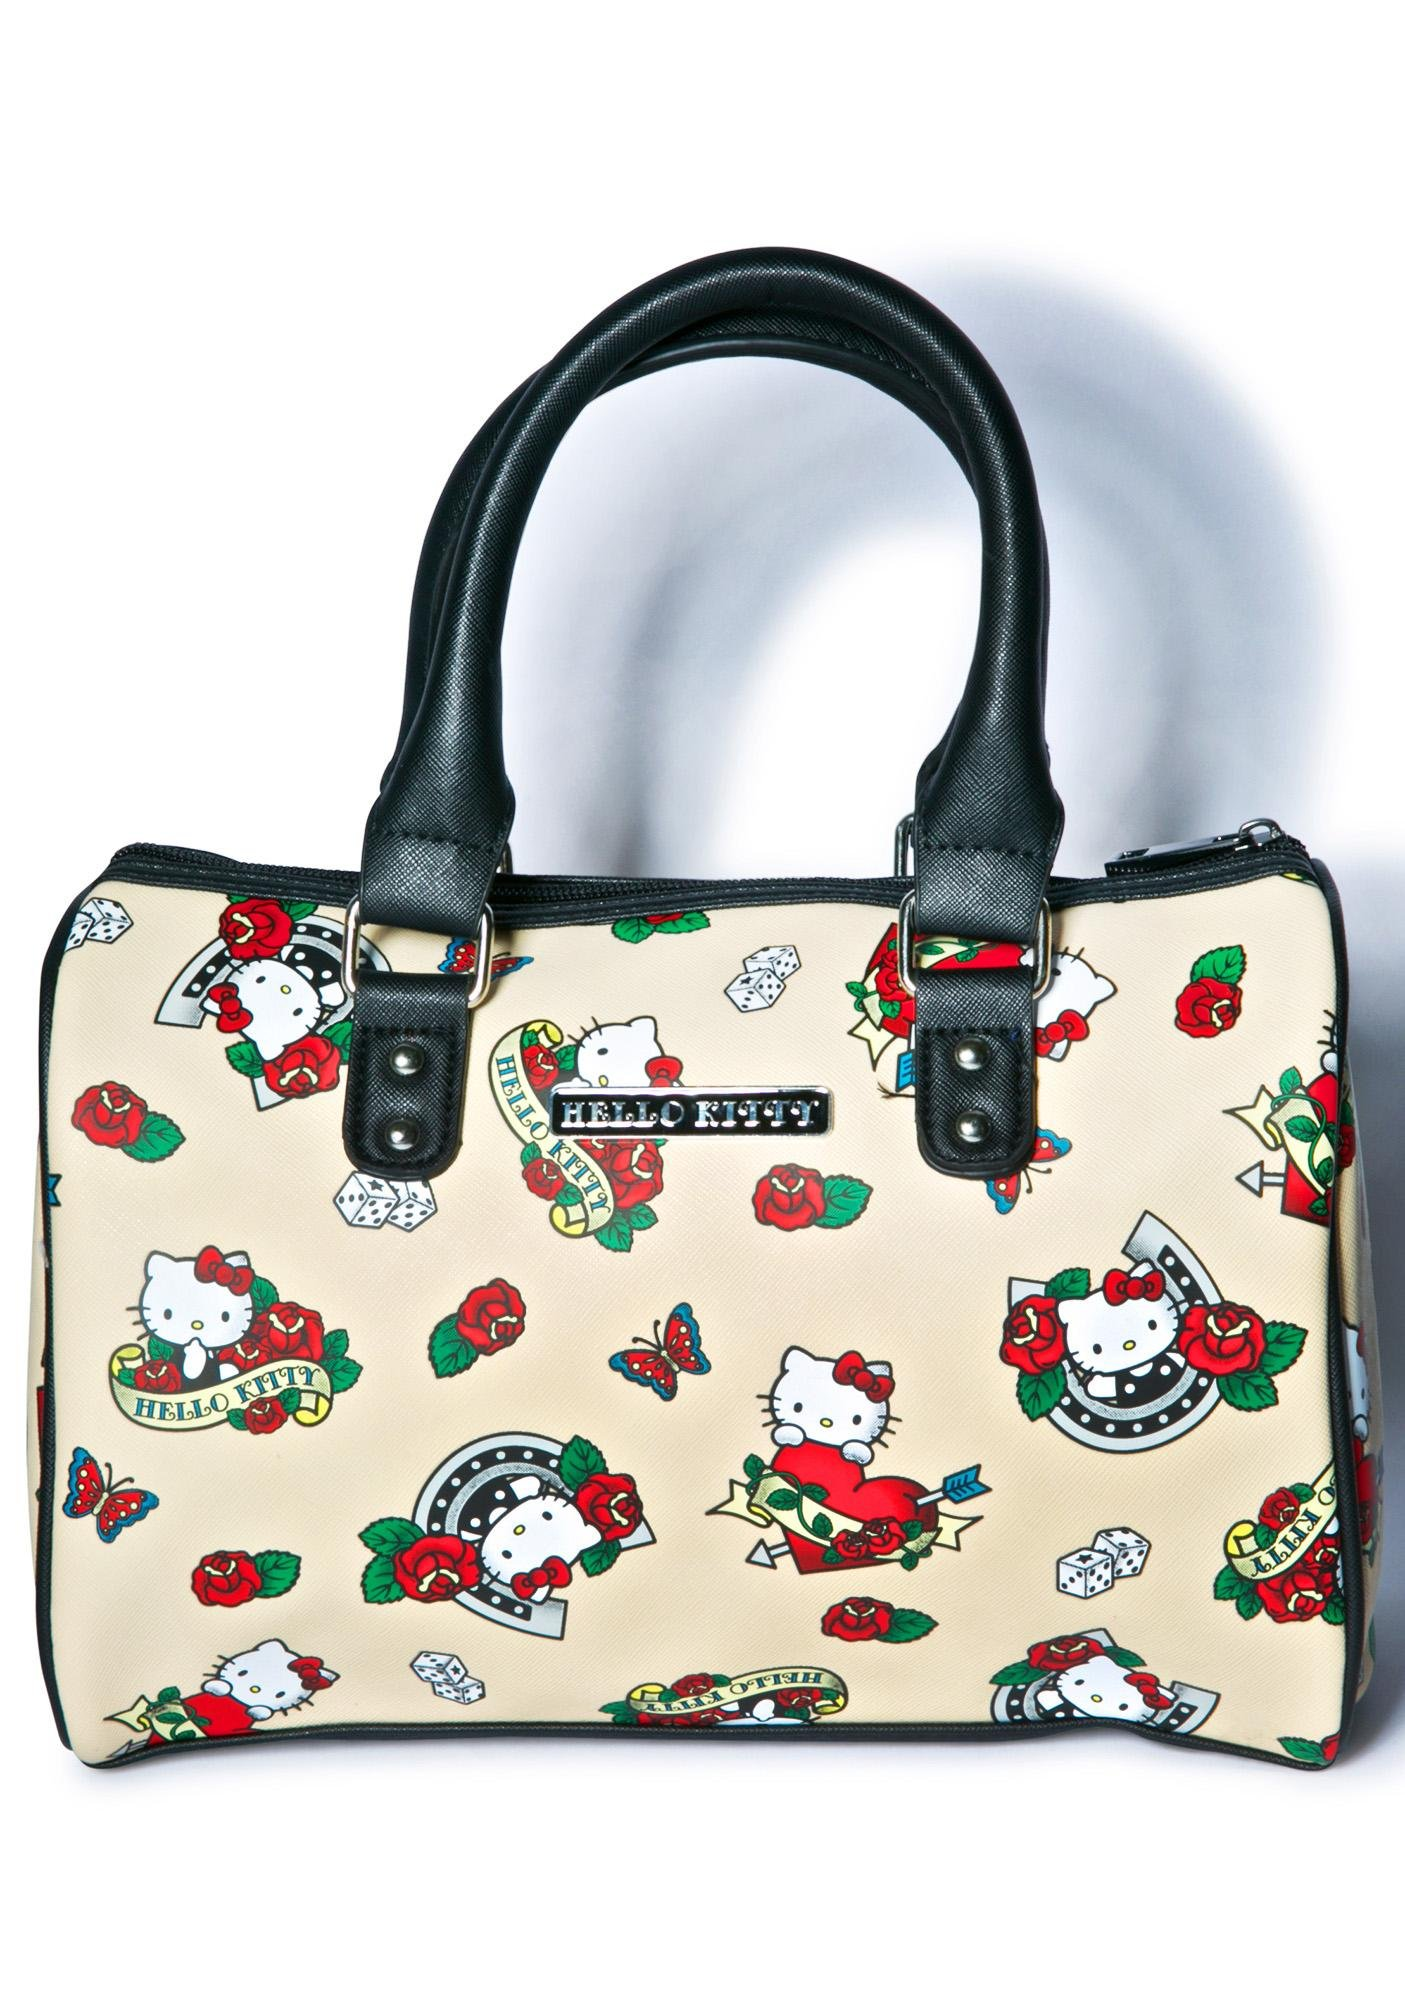 Sanrio Hello Kitty Rose Satchel